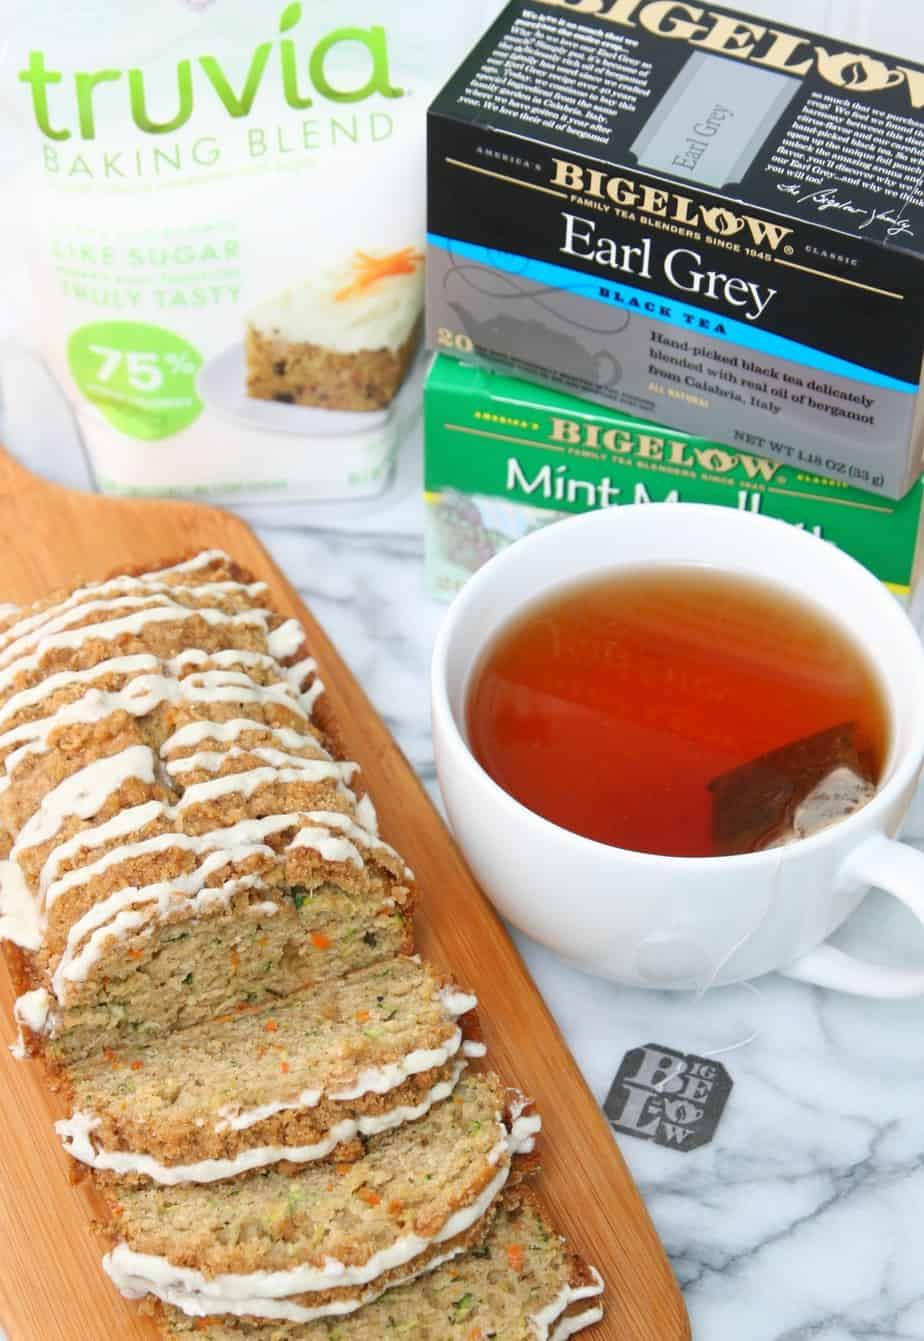 Zucchini Carrot Bread with Truvia and Bigelow Tea